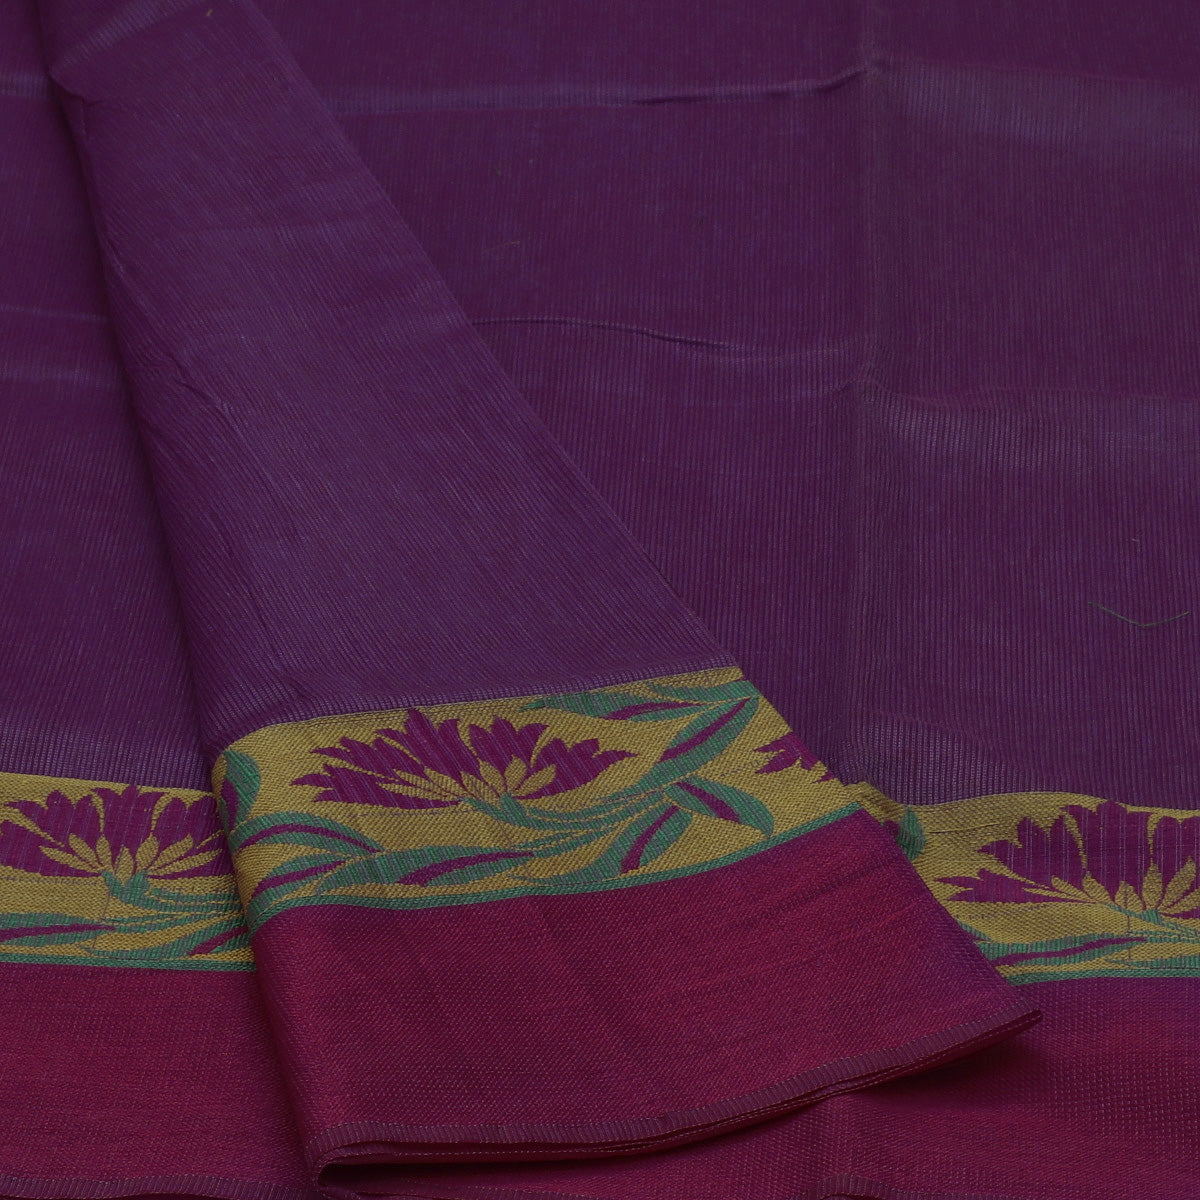 Kota Cotton Saree Lavender and Yellow with Floral Design Border and Blouse